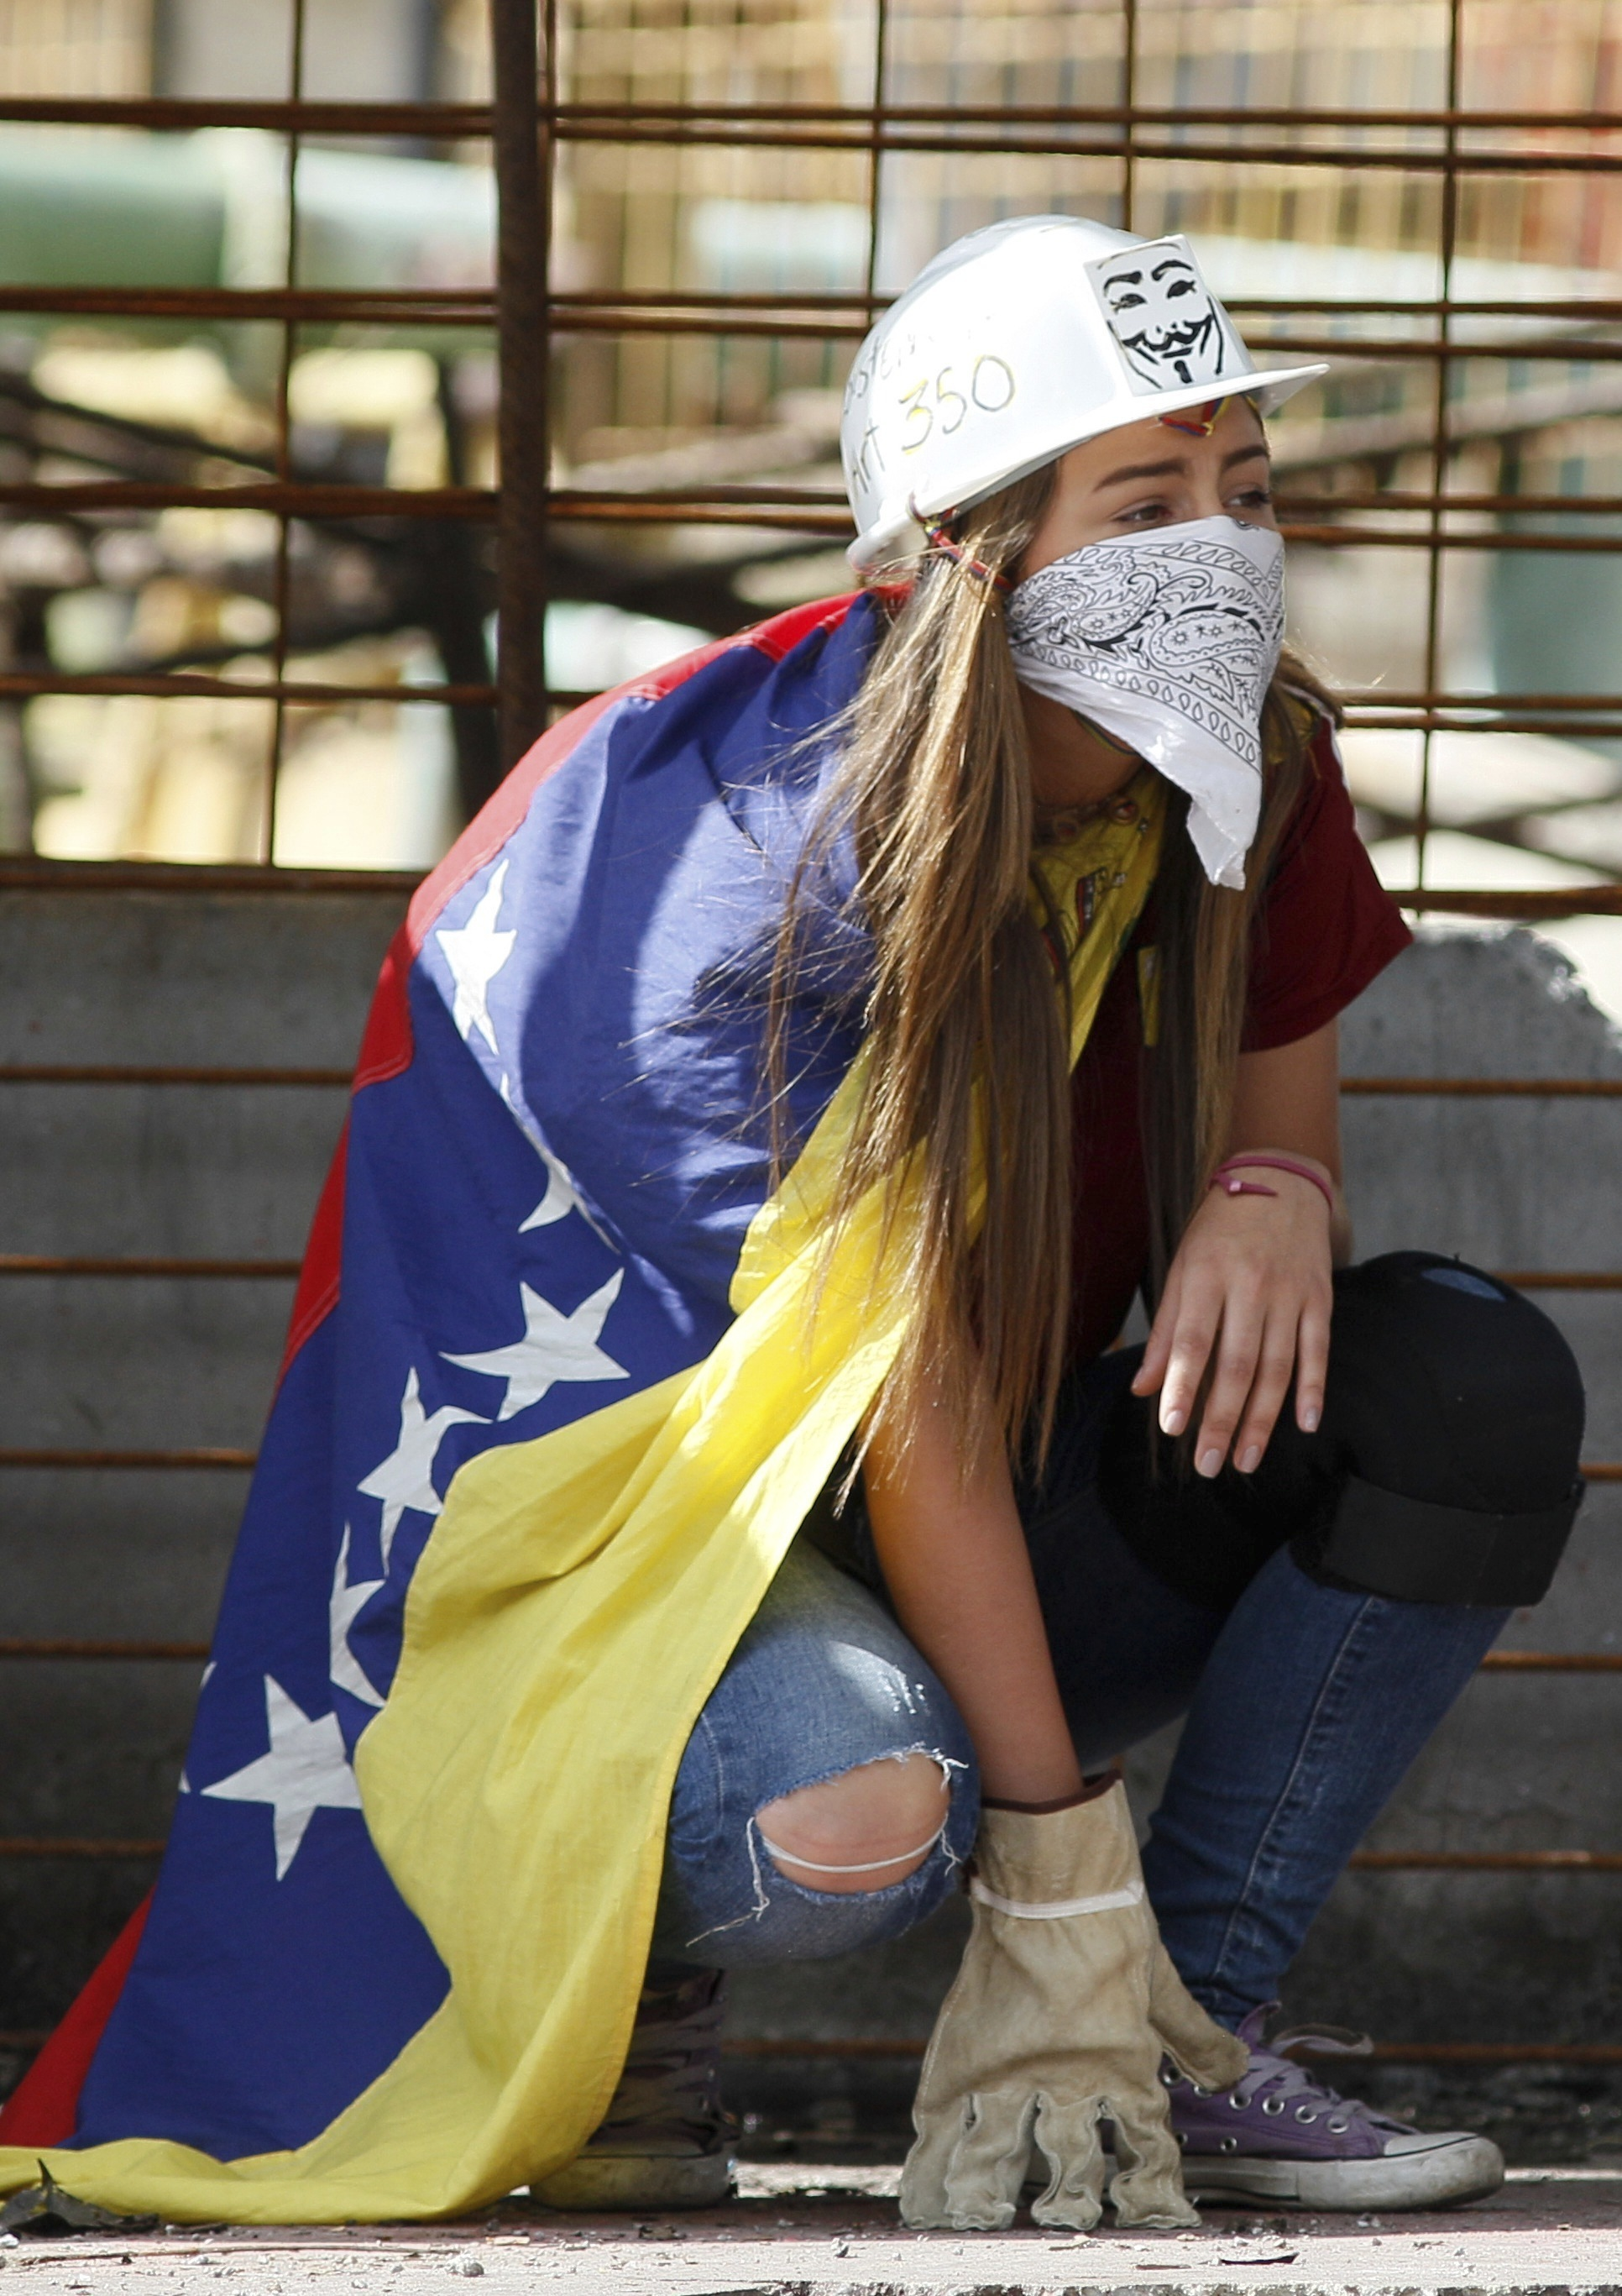 An anti-government demonstrator wears a Venezuelan flag, helmet, bandana and gloves during clashes against Bolivarian National Guards in Caracas, Venezuela, Friday, July 28, 2017, two days before the vote to begin the rewriting of Venezuela's constitution. Protesters say the election of a constitutional assembly will allow President Nicolas Maduro to eliminate democratic checks and balances and install an authoritarian single-party system. (AP Photo/Ariana Cubillos)